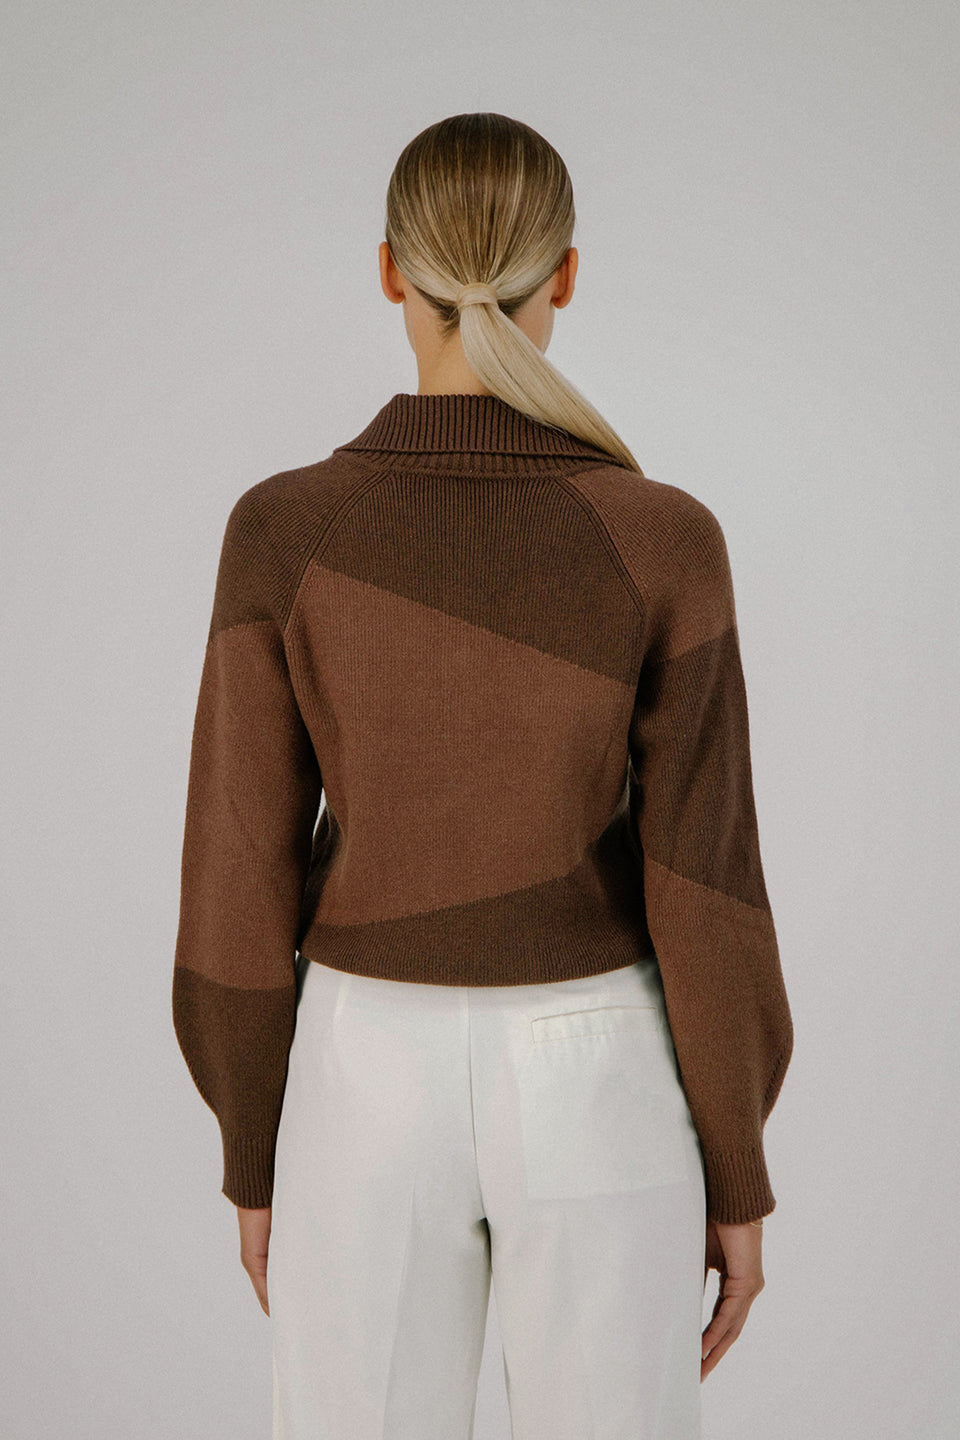 DECONSTRUCTED KNIT SWEATER TWO-TONED BROWN